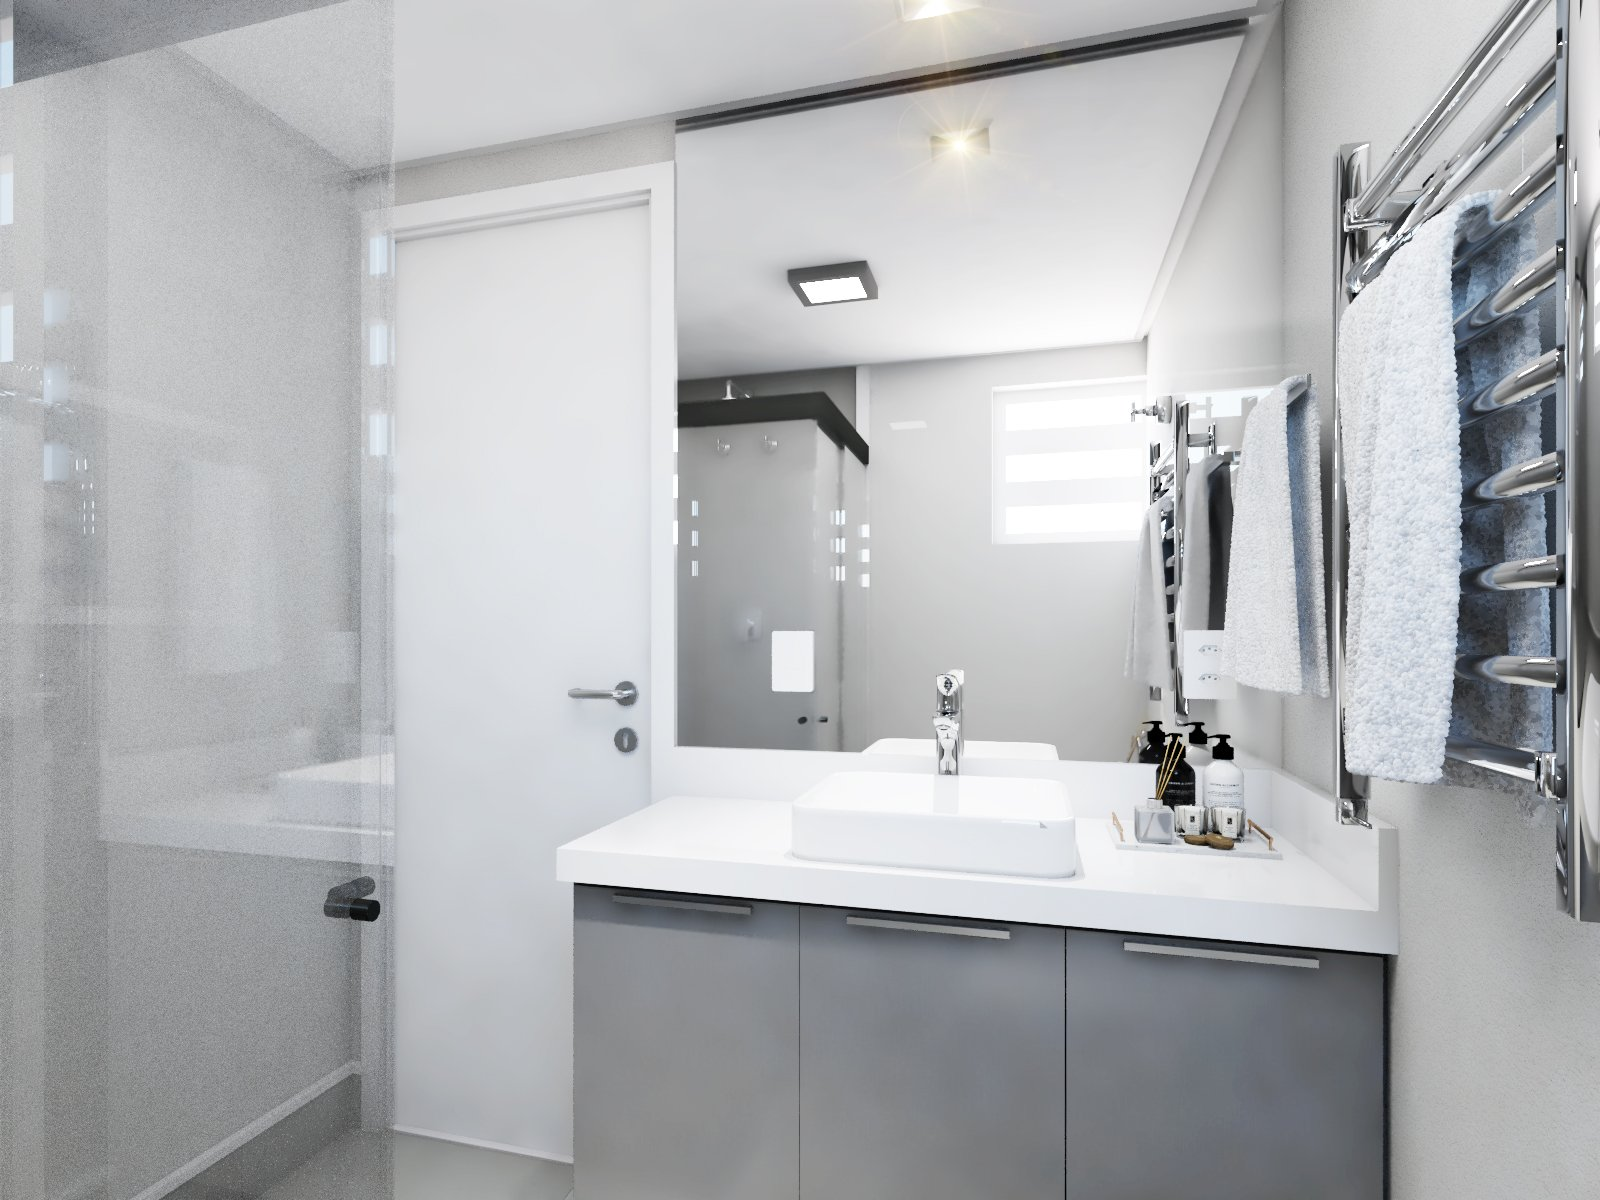 desktop_bathroom7.jpg